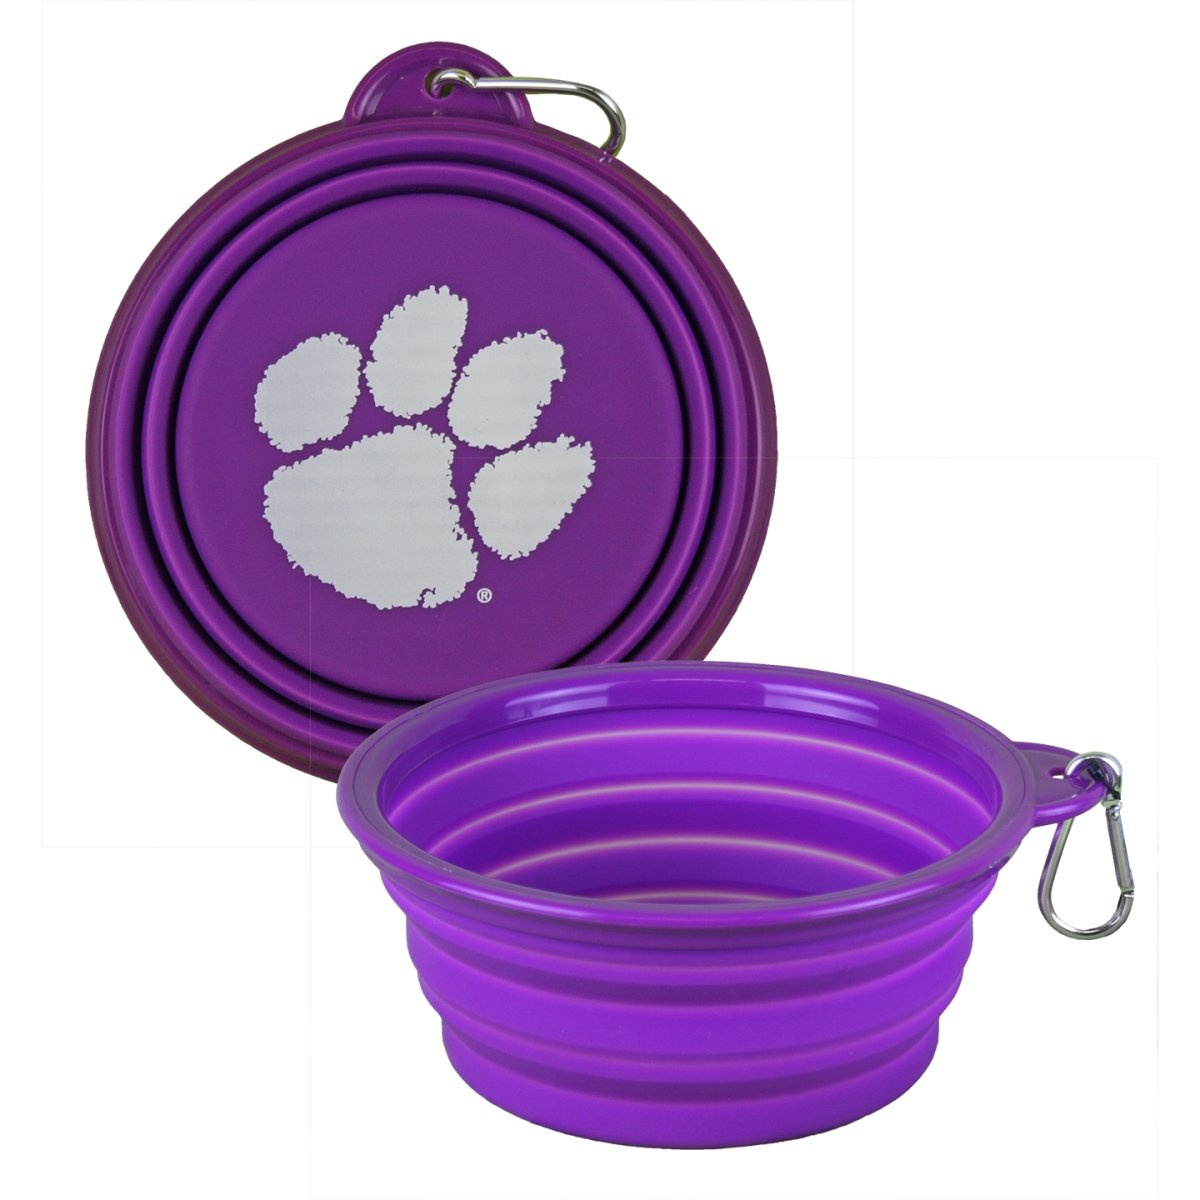 Silicone Collapsible Dog Bowl With White Paw - Mr. Knickerbocker